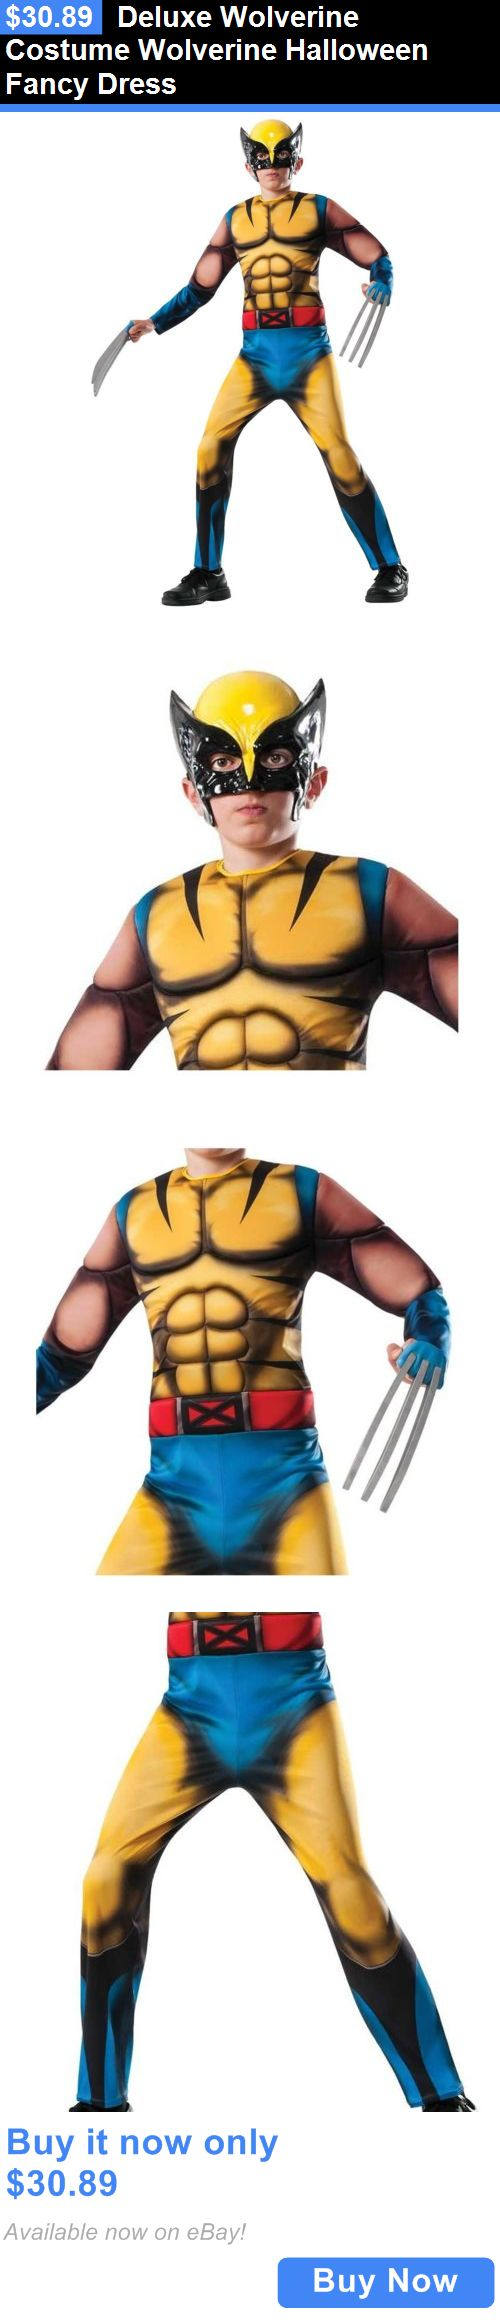 Kids Costumes: Deluxe Wolverine Costume Wolverine Halloween Fancy Dress BUY IT NOW ONLY: $30.89